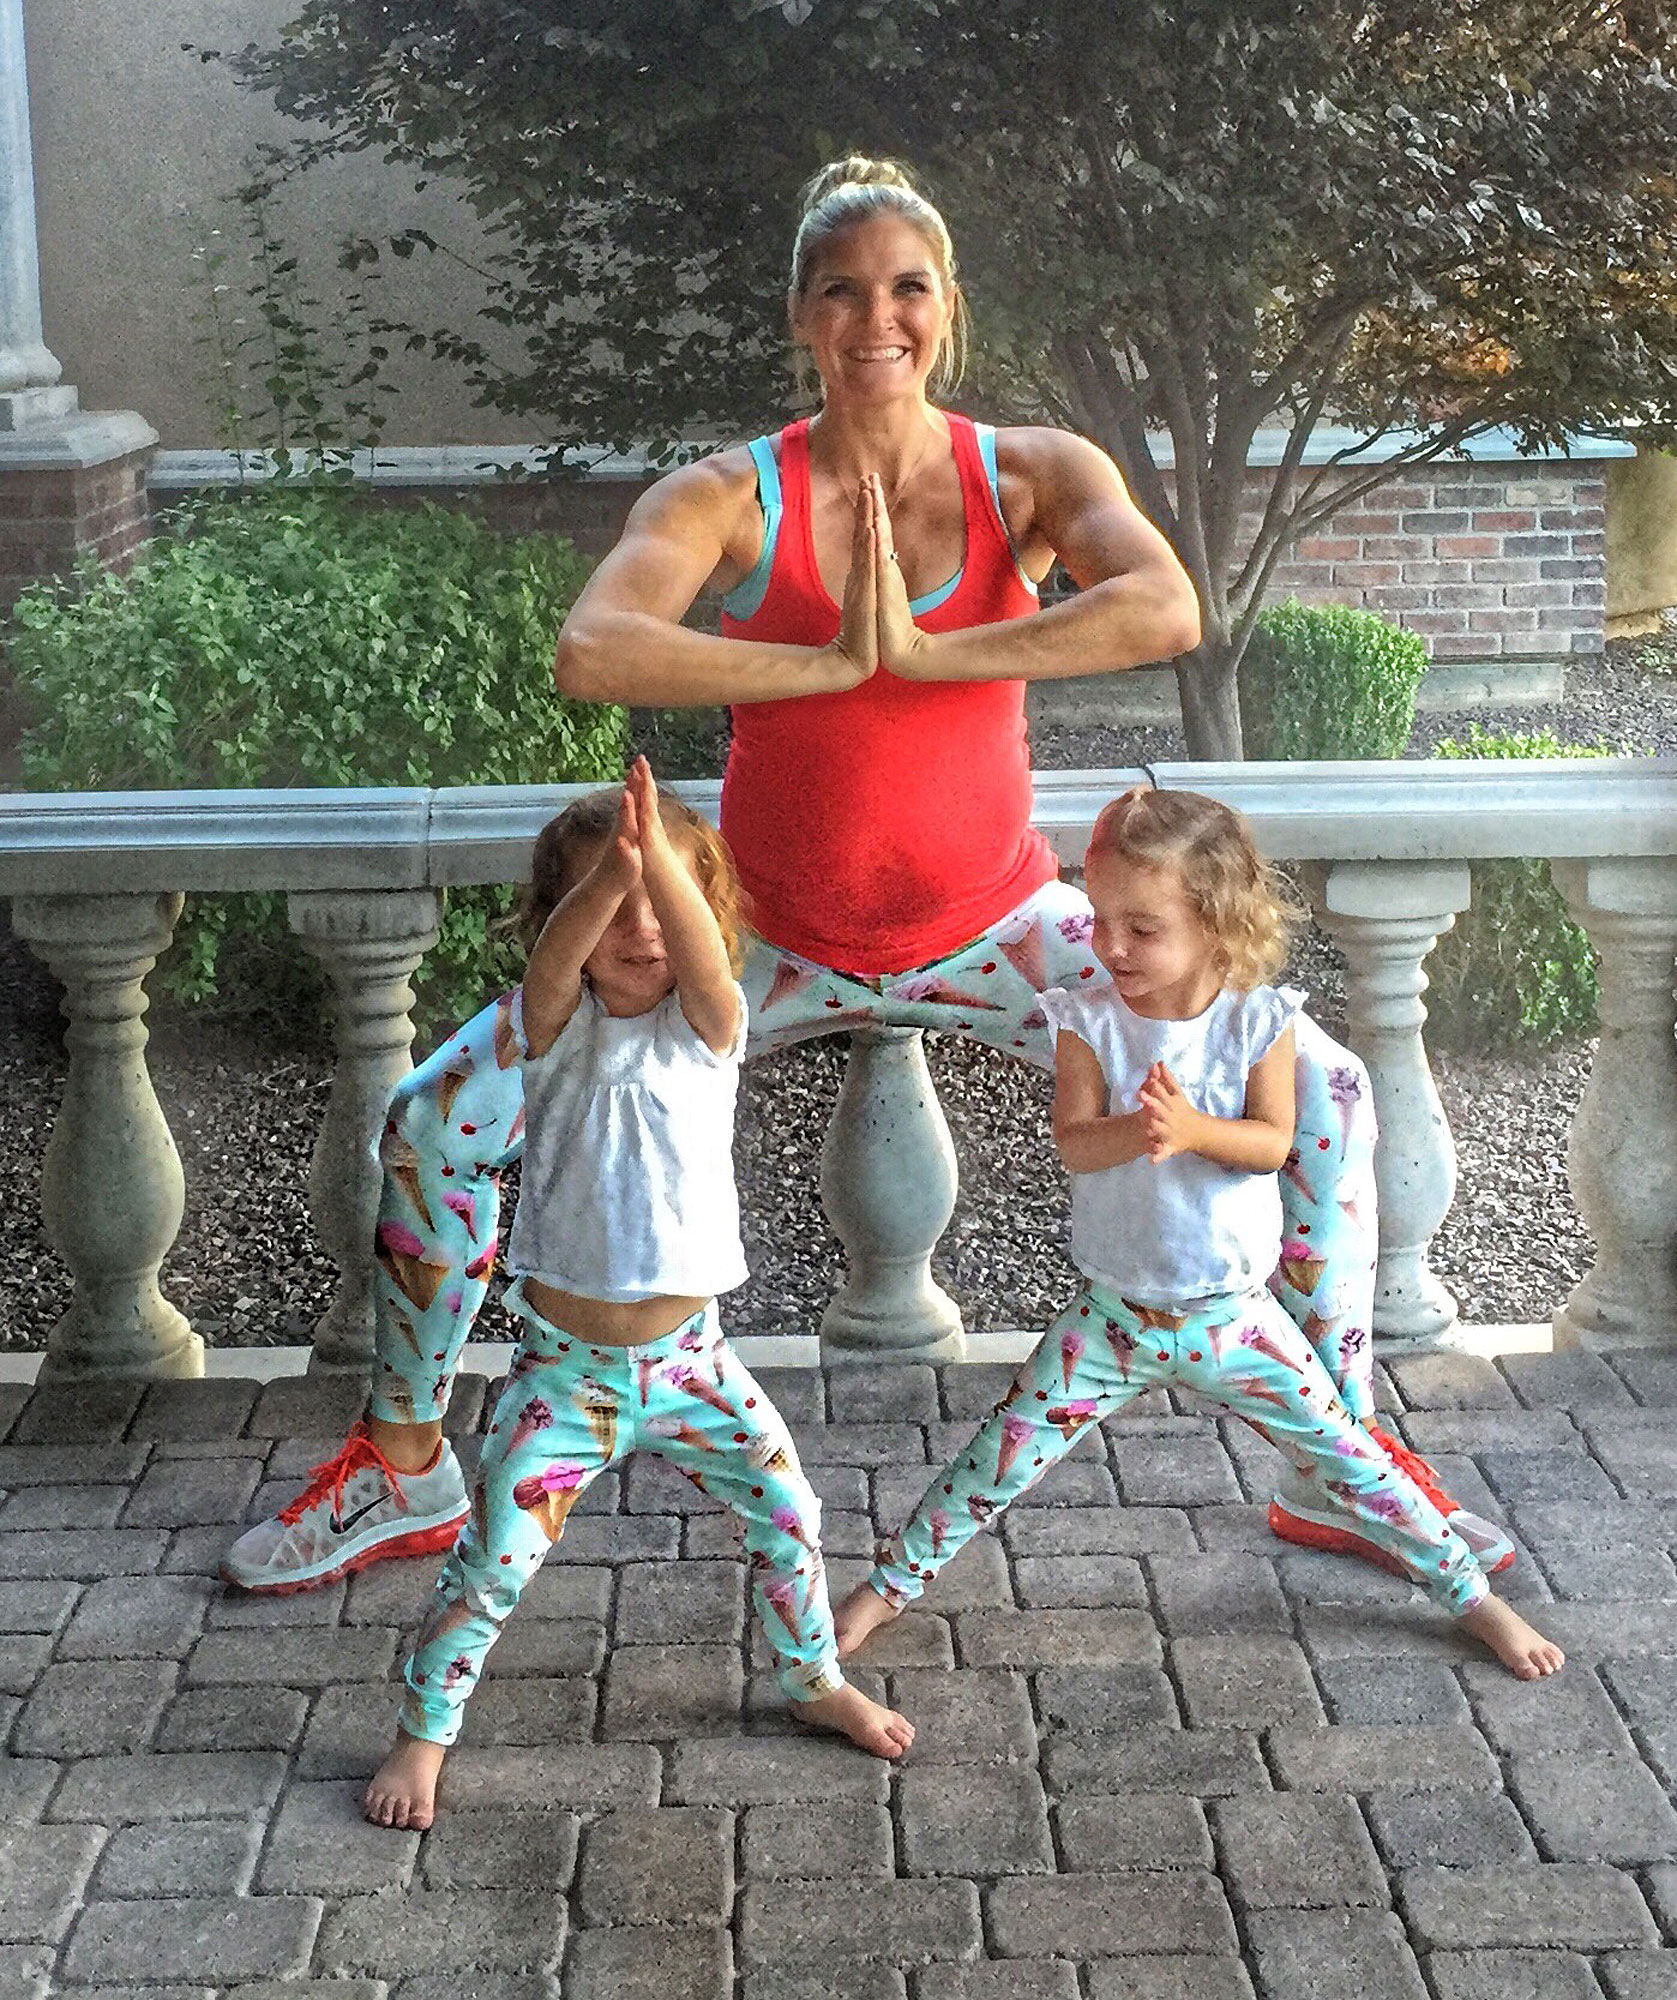 Interviewed this mom who works out with her kids.